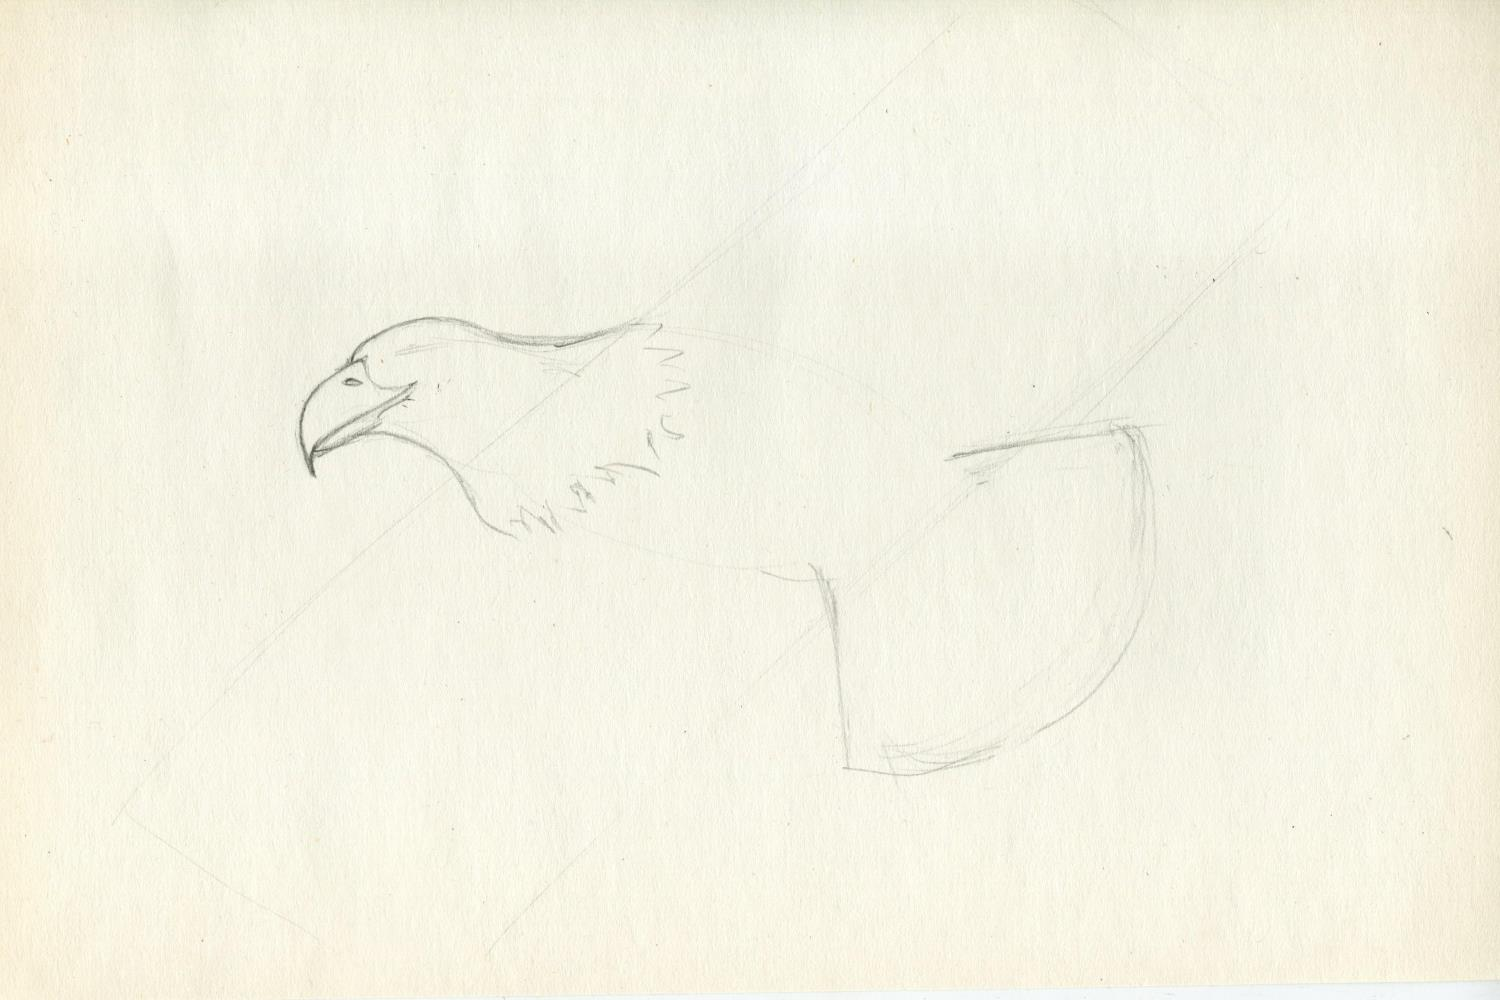 How to draw eagle pencil step by step? Step 2.